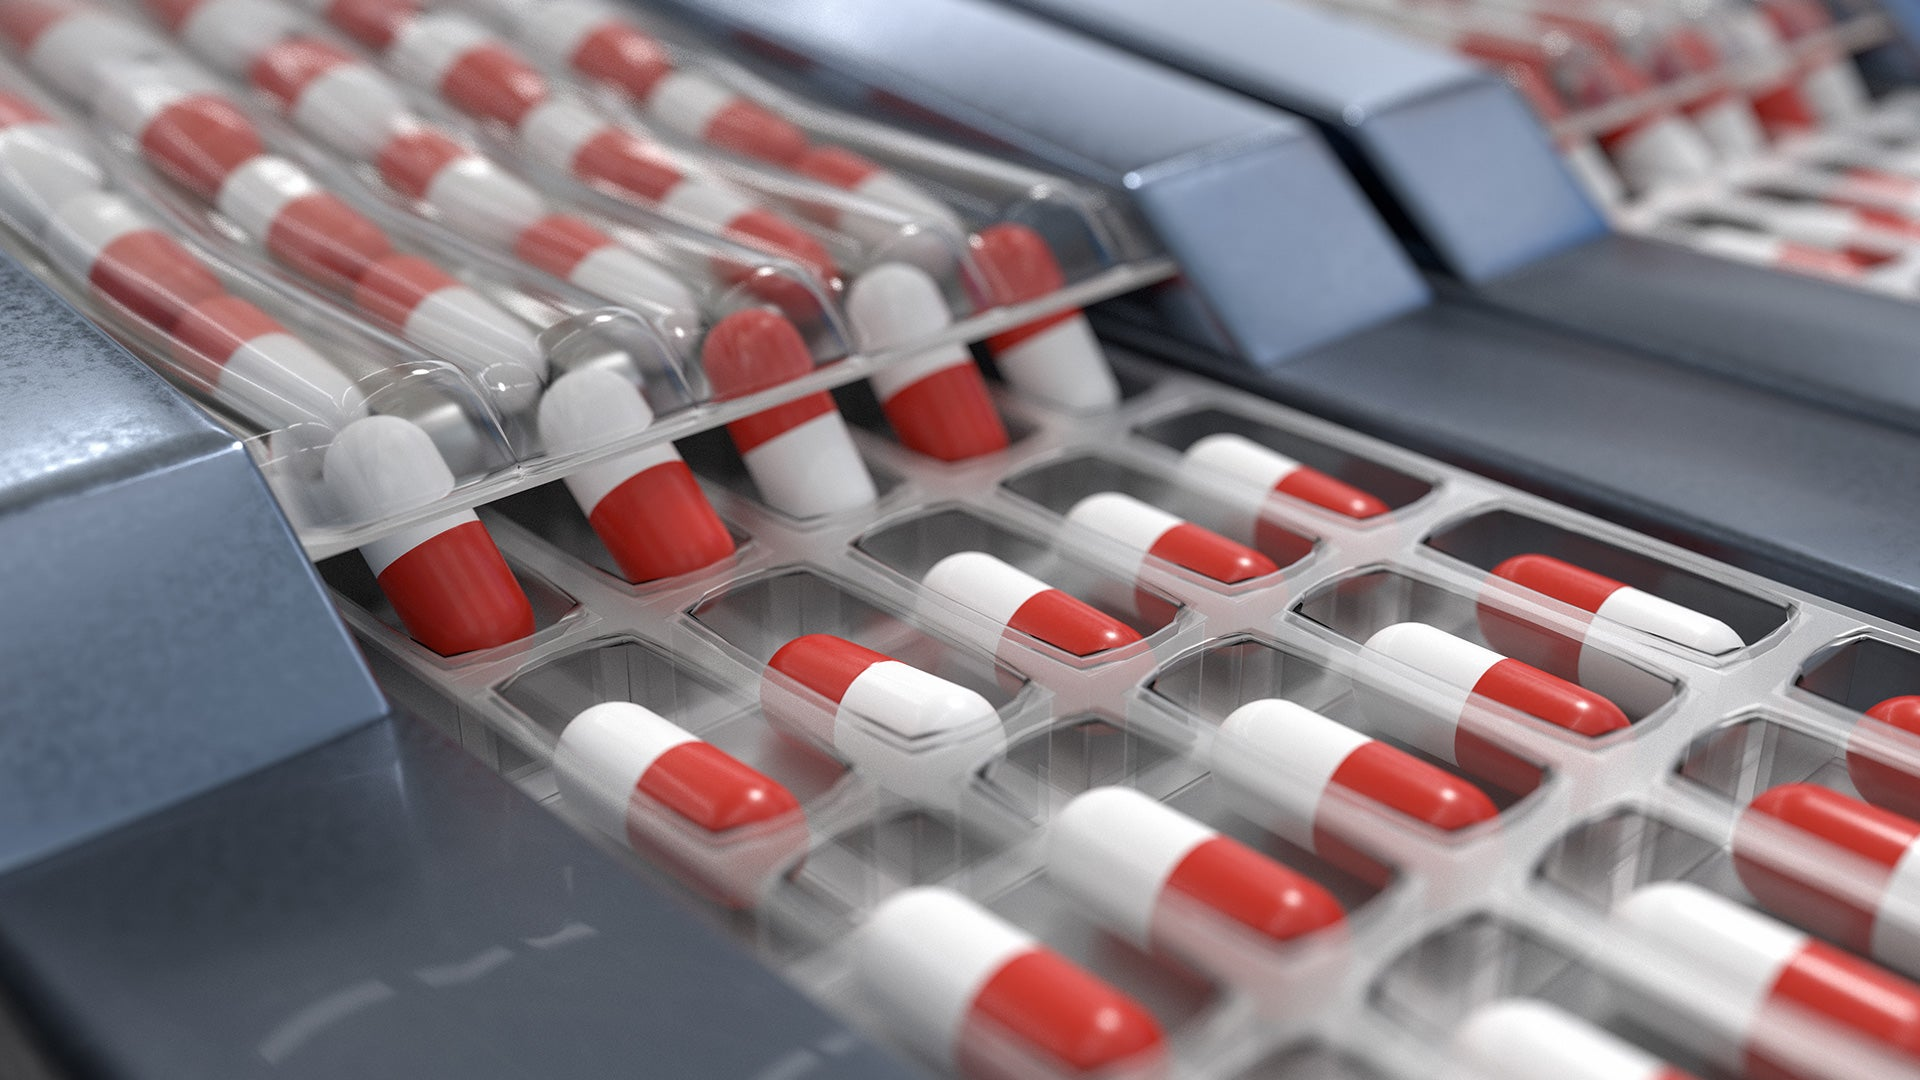 New Study Shows Path to Uninterrupted Supply of Safe, Effective Drugs for US Consumers